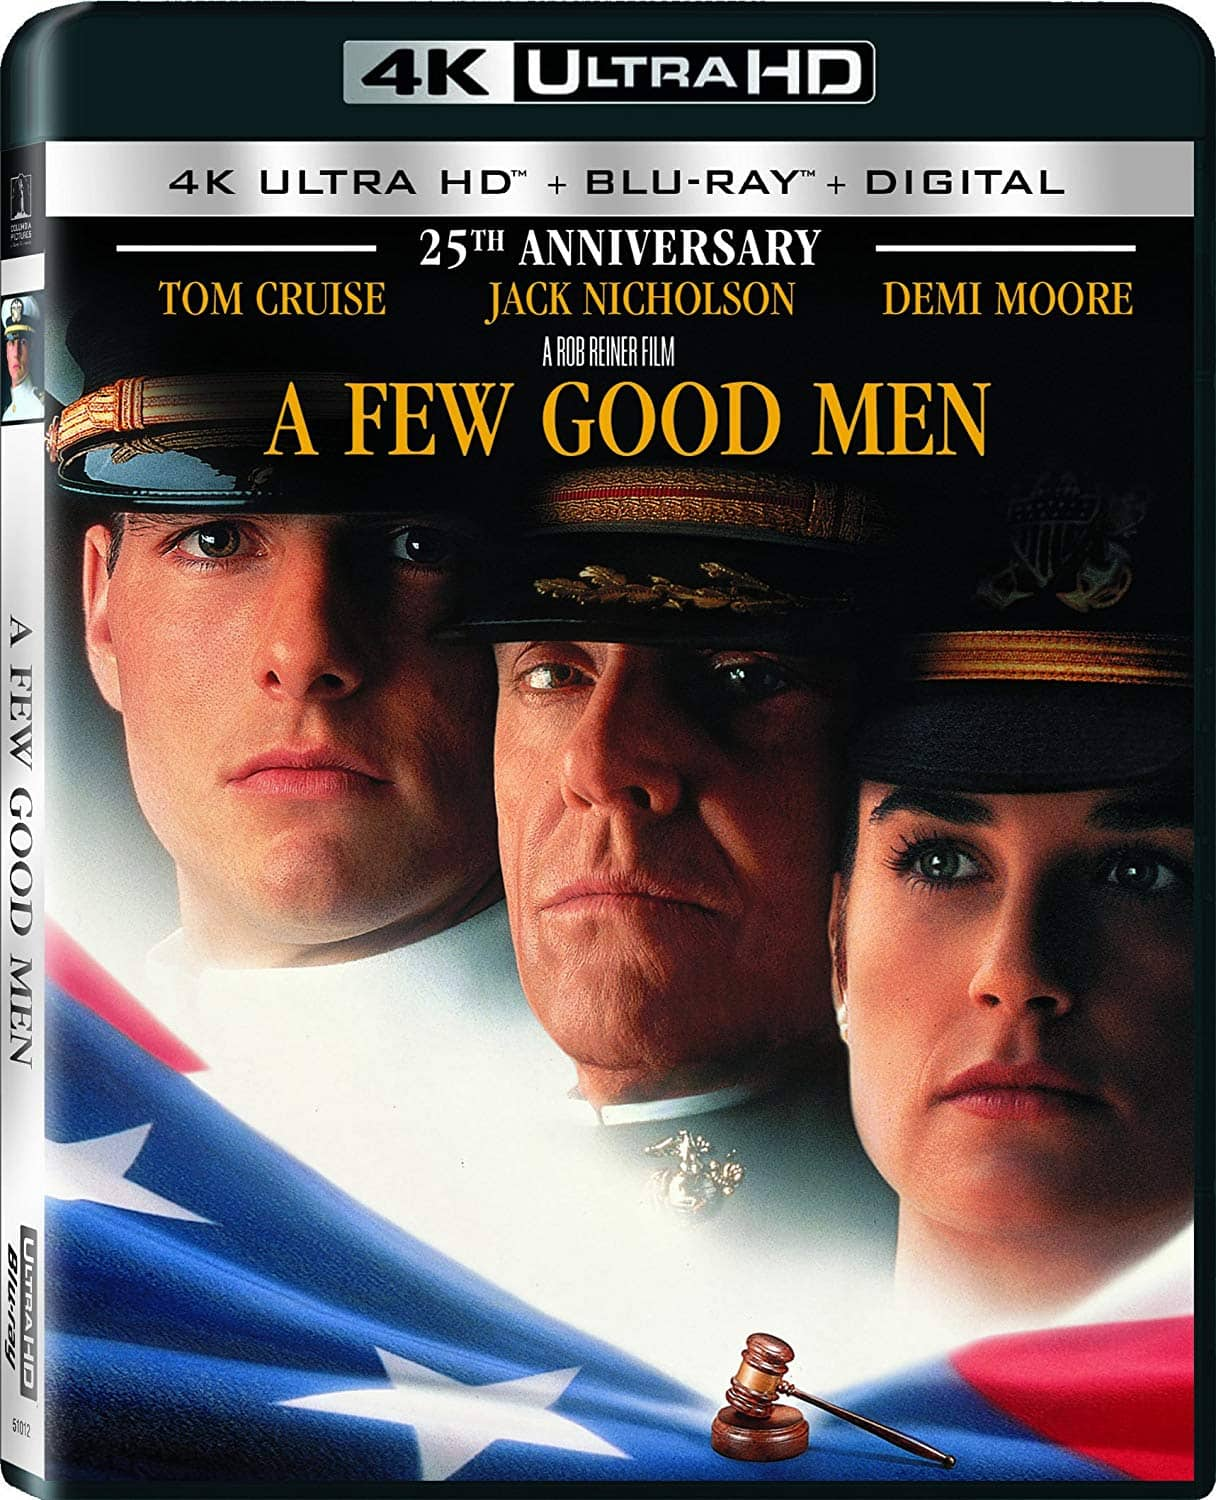 A Few Good Men (25th Anniversary Edition / 4K Ultra HD + Blu-ray + Digital HD) $11.99 at amazon (Lightning Deal)